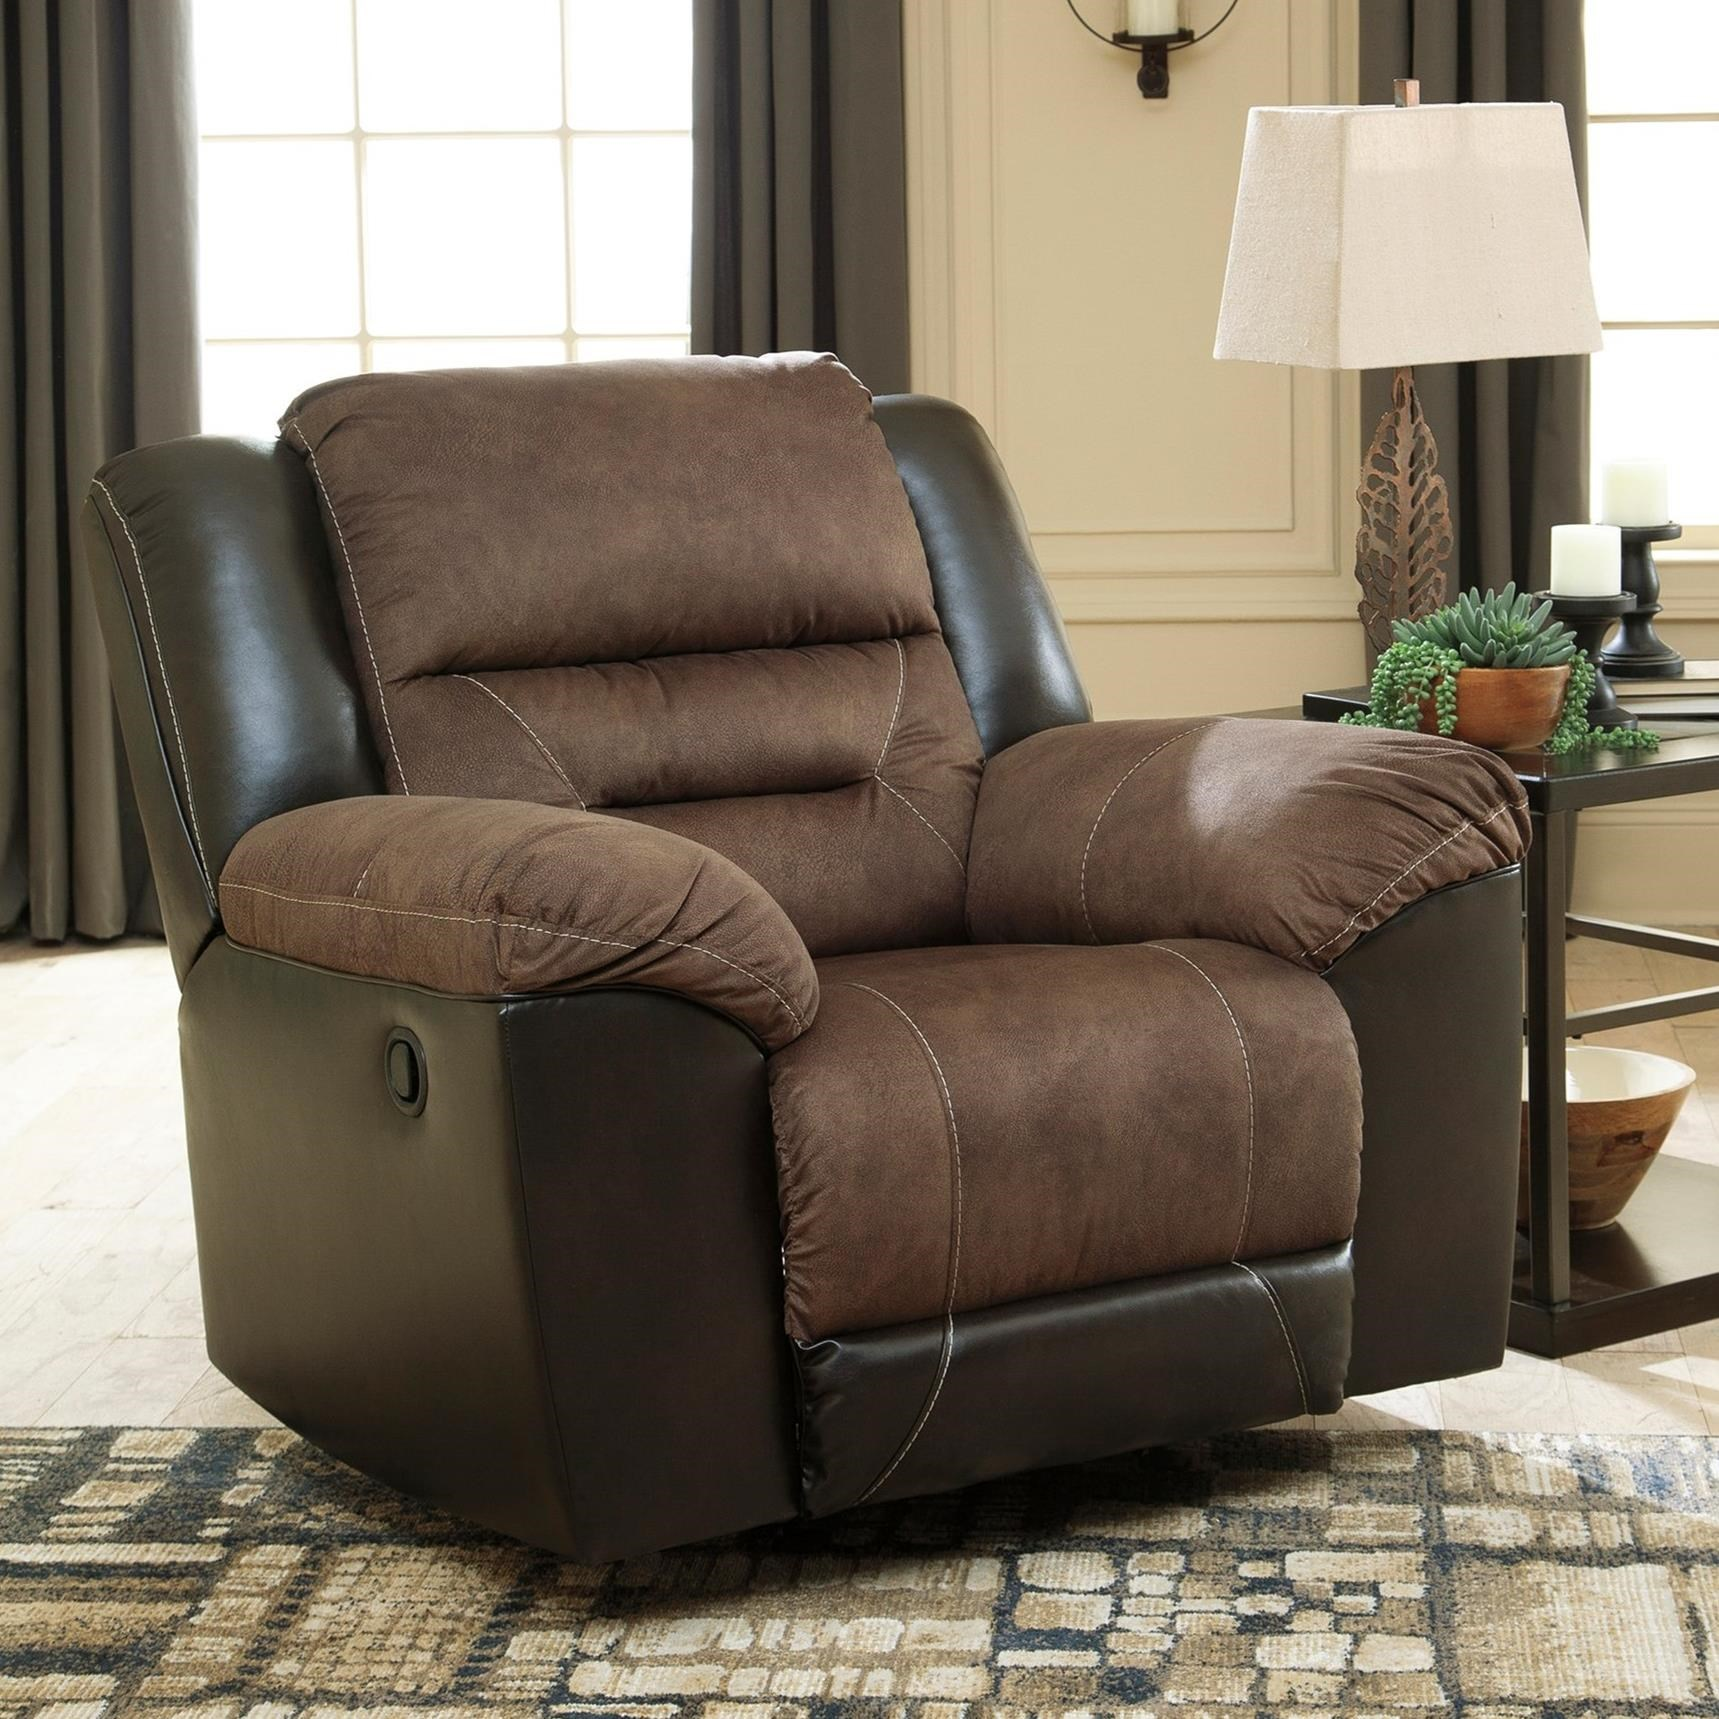 Earhart Rocker Recliner by Signature Design by Ashley at Houston's Yuma Furniture